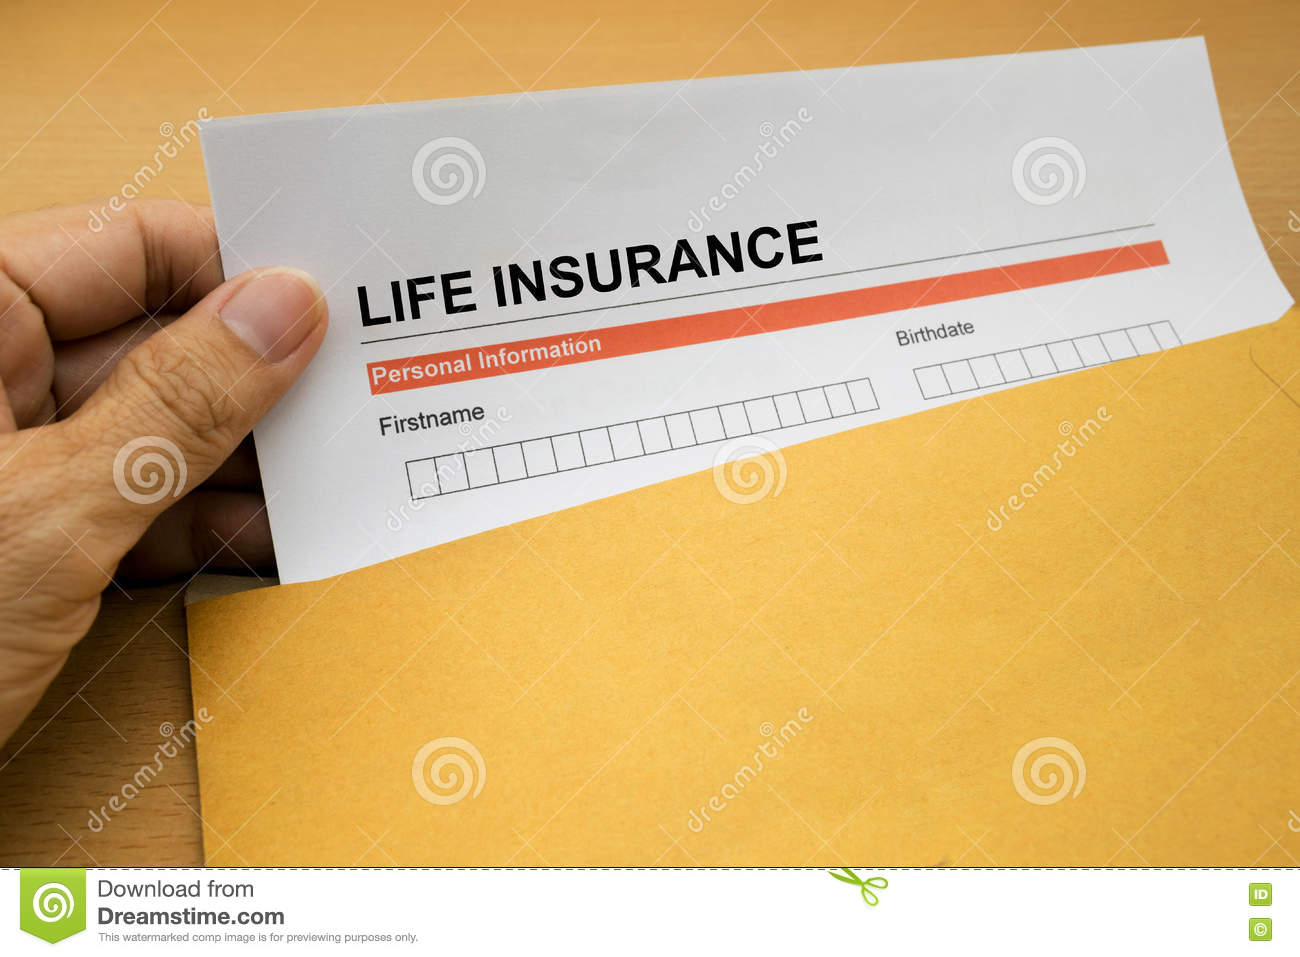 Life Insurance Application Form Stock Photo - Image of legal, plan on life insurance forms printable, photography application forms, life insurance forms templates, property management application forms, life insurance application process, business insurance forms, medical application forms, construction application forms, life insurance forms blank, health insurance application forms, social security application forms, teacher job application forms, life insurance enrollment forms, life insurance forms online, 401k application forms, internet application forms, auto application forms, government application forms,